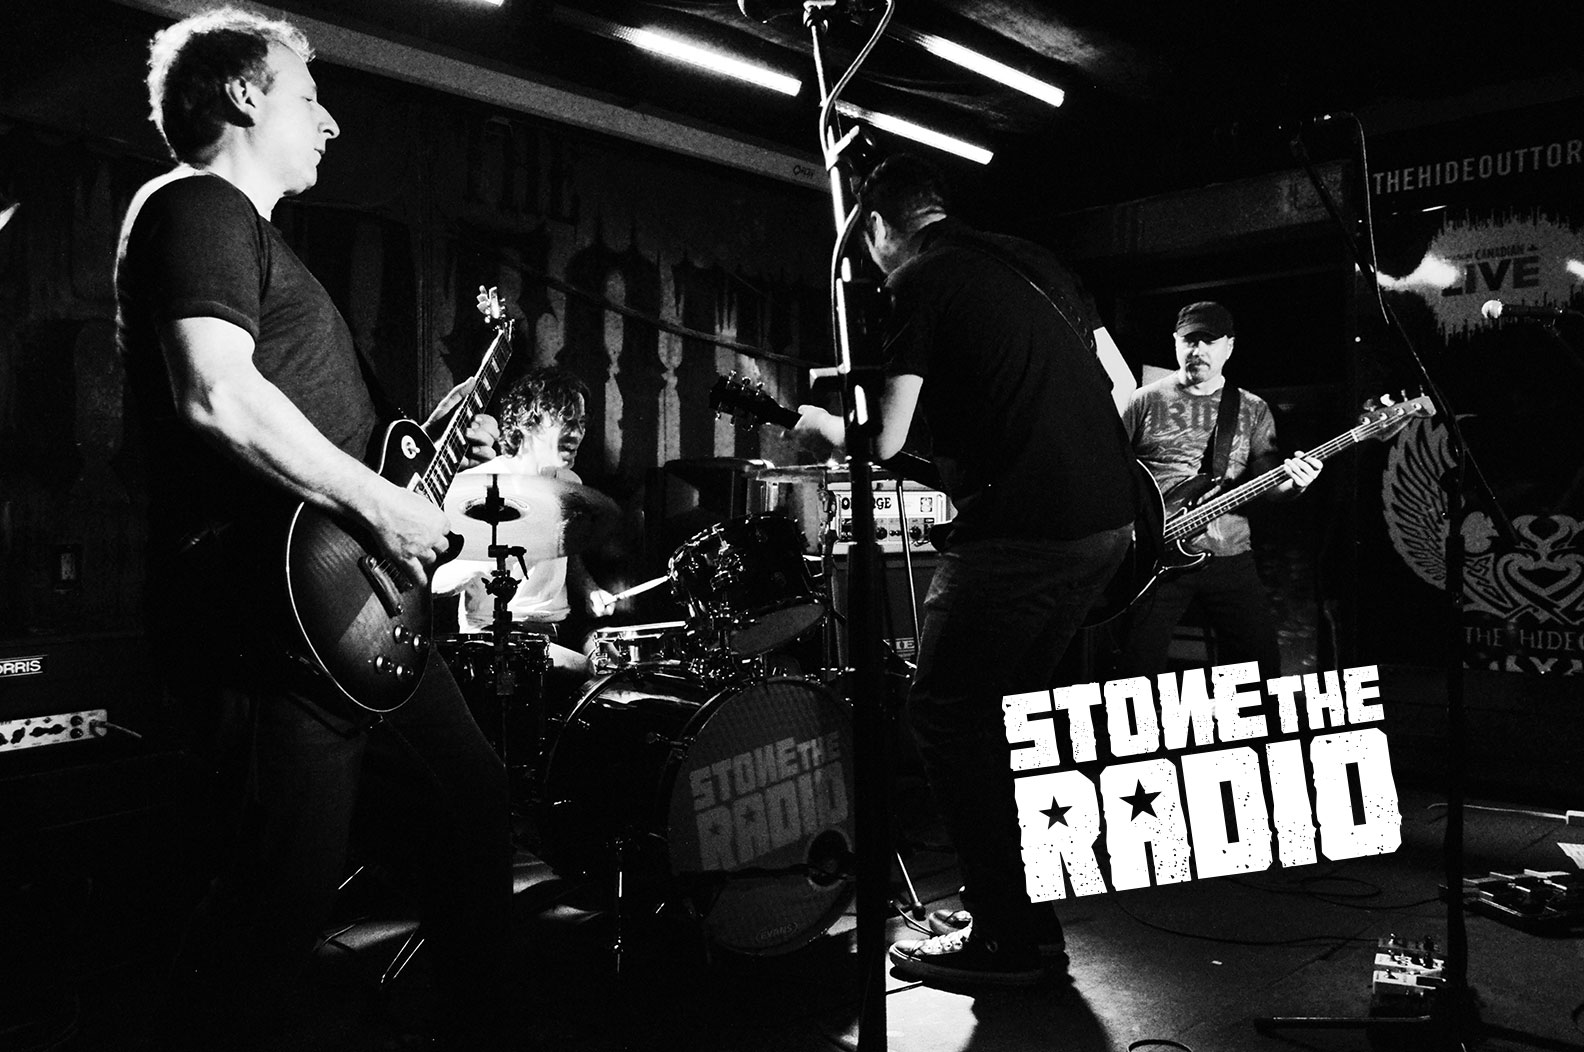 Stone The Radio  is four guys from the Southern Ontario area who perform new and classic alternative rock. From the local pubs and bars to the bigger special event, casino and festival stages, Stone The Radio brings something unique to the live music scene! Get ready to rock out to some awesome live alt-rock tunes!